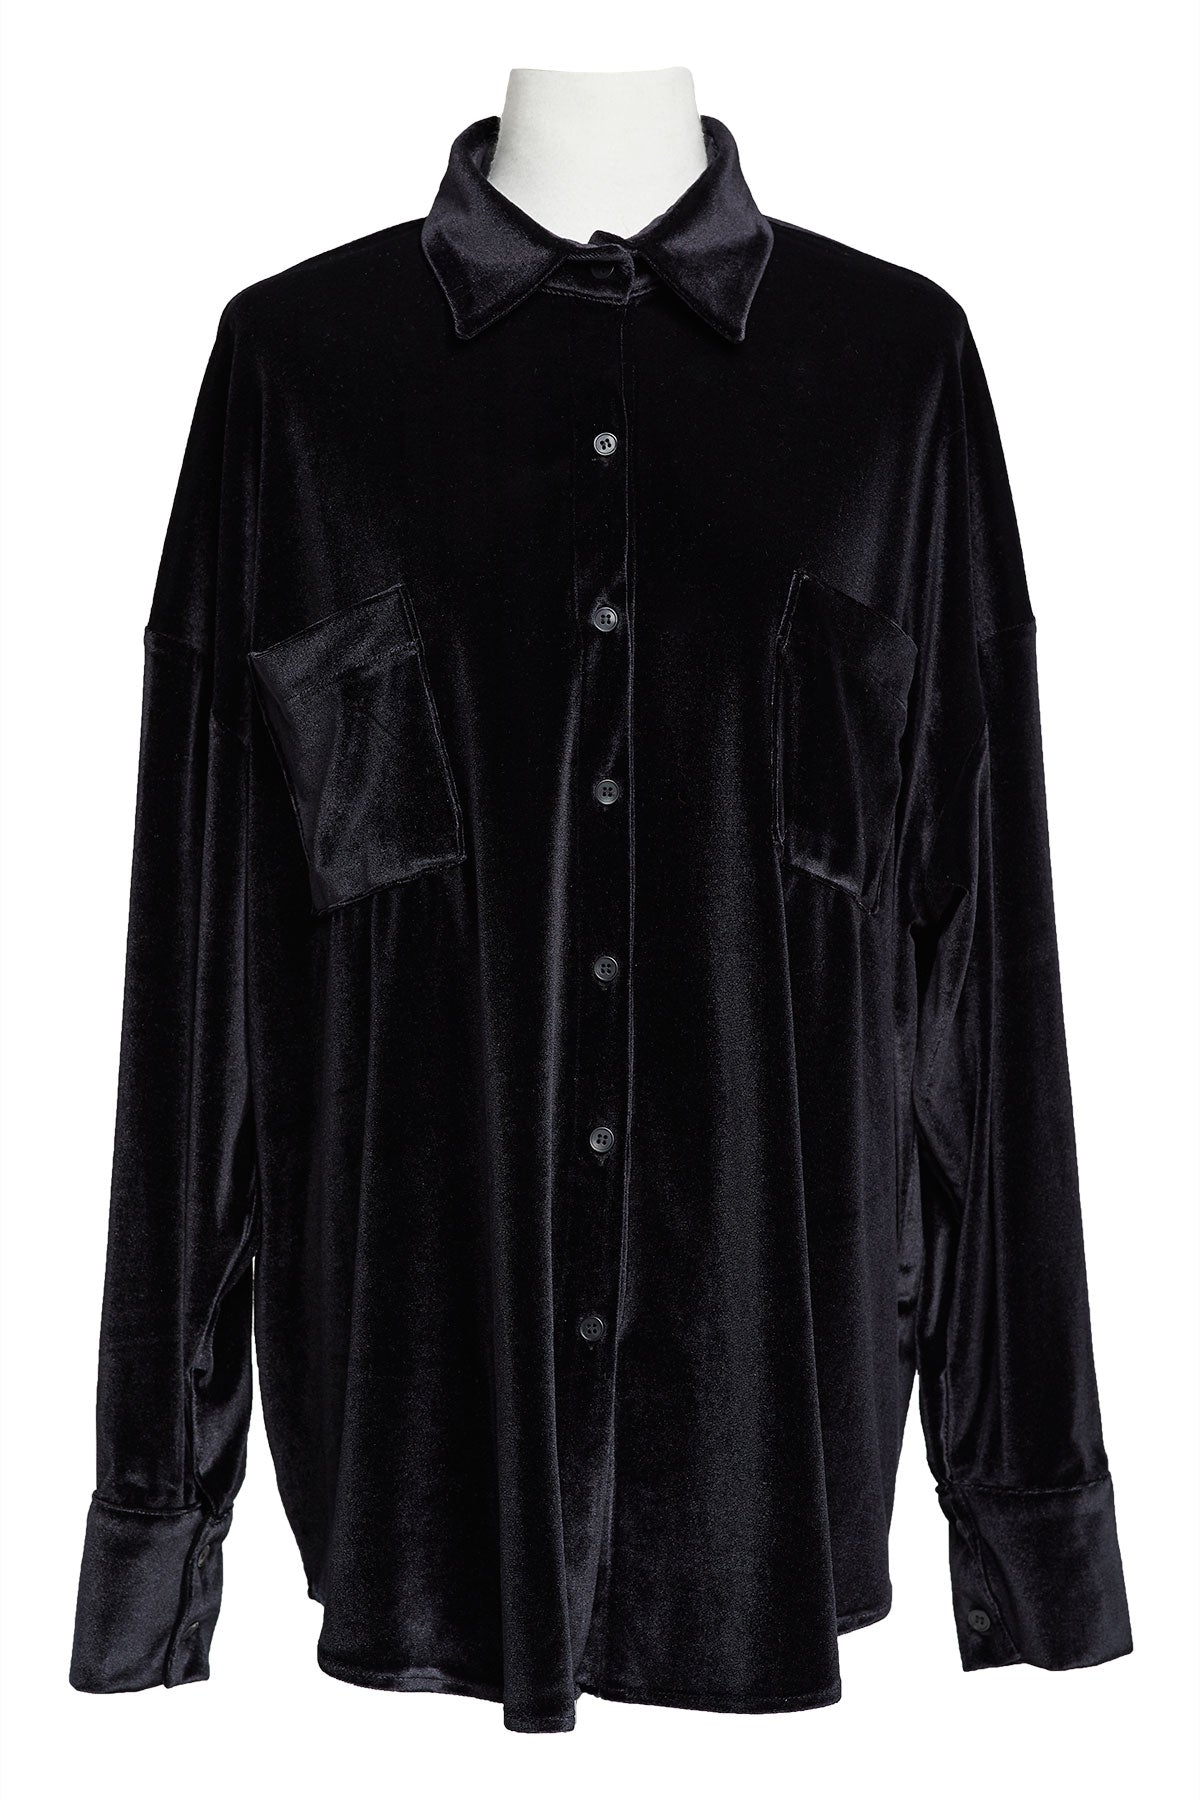 Yena Velvet Shirt-2 Colors